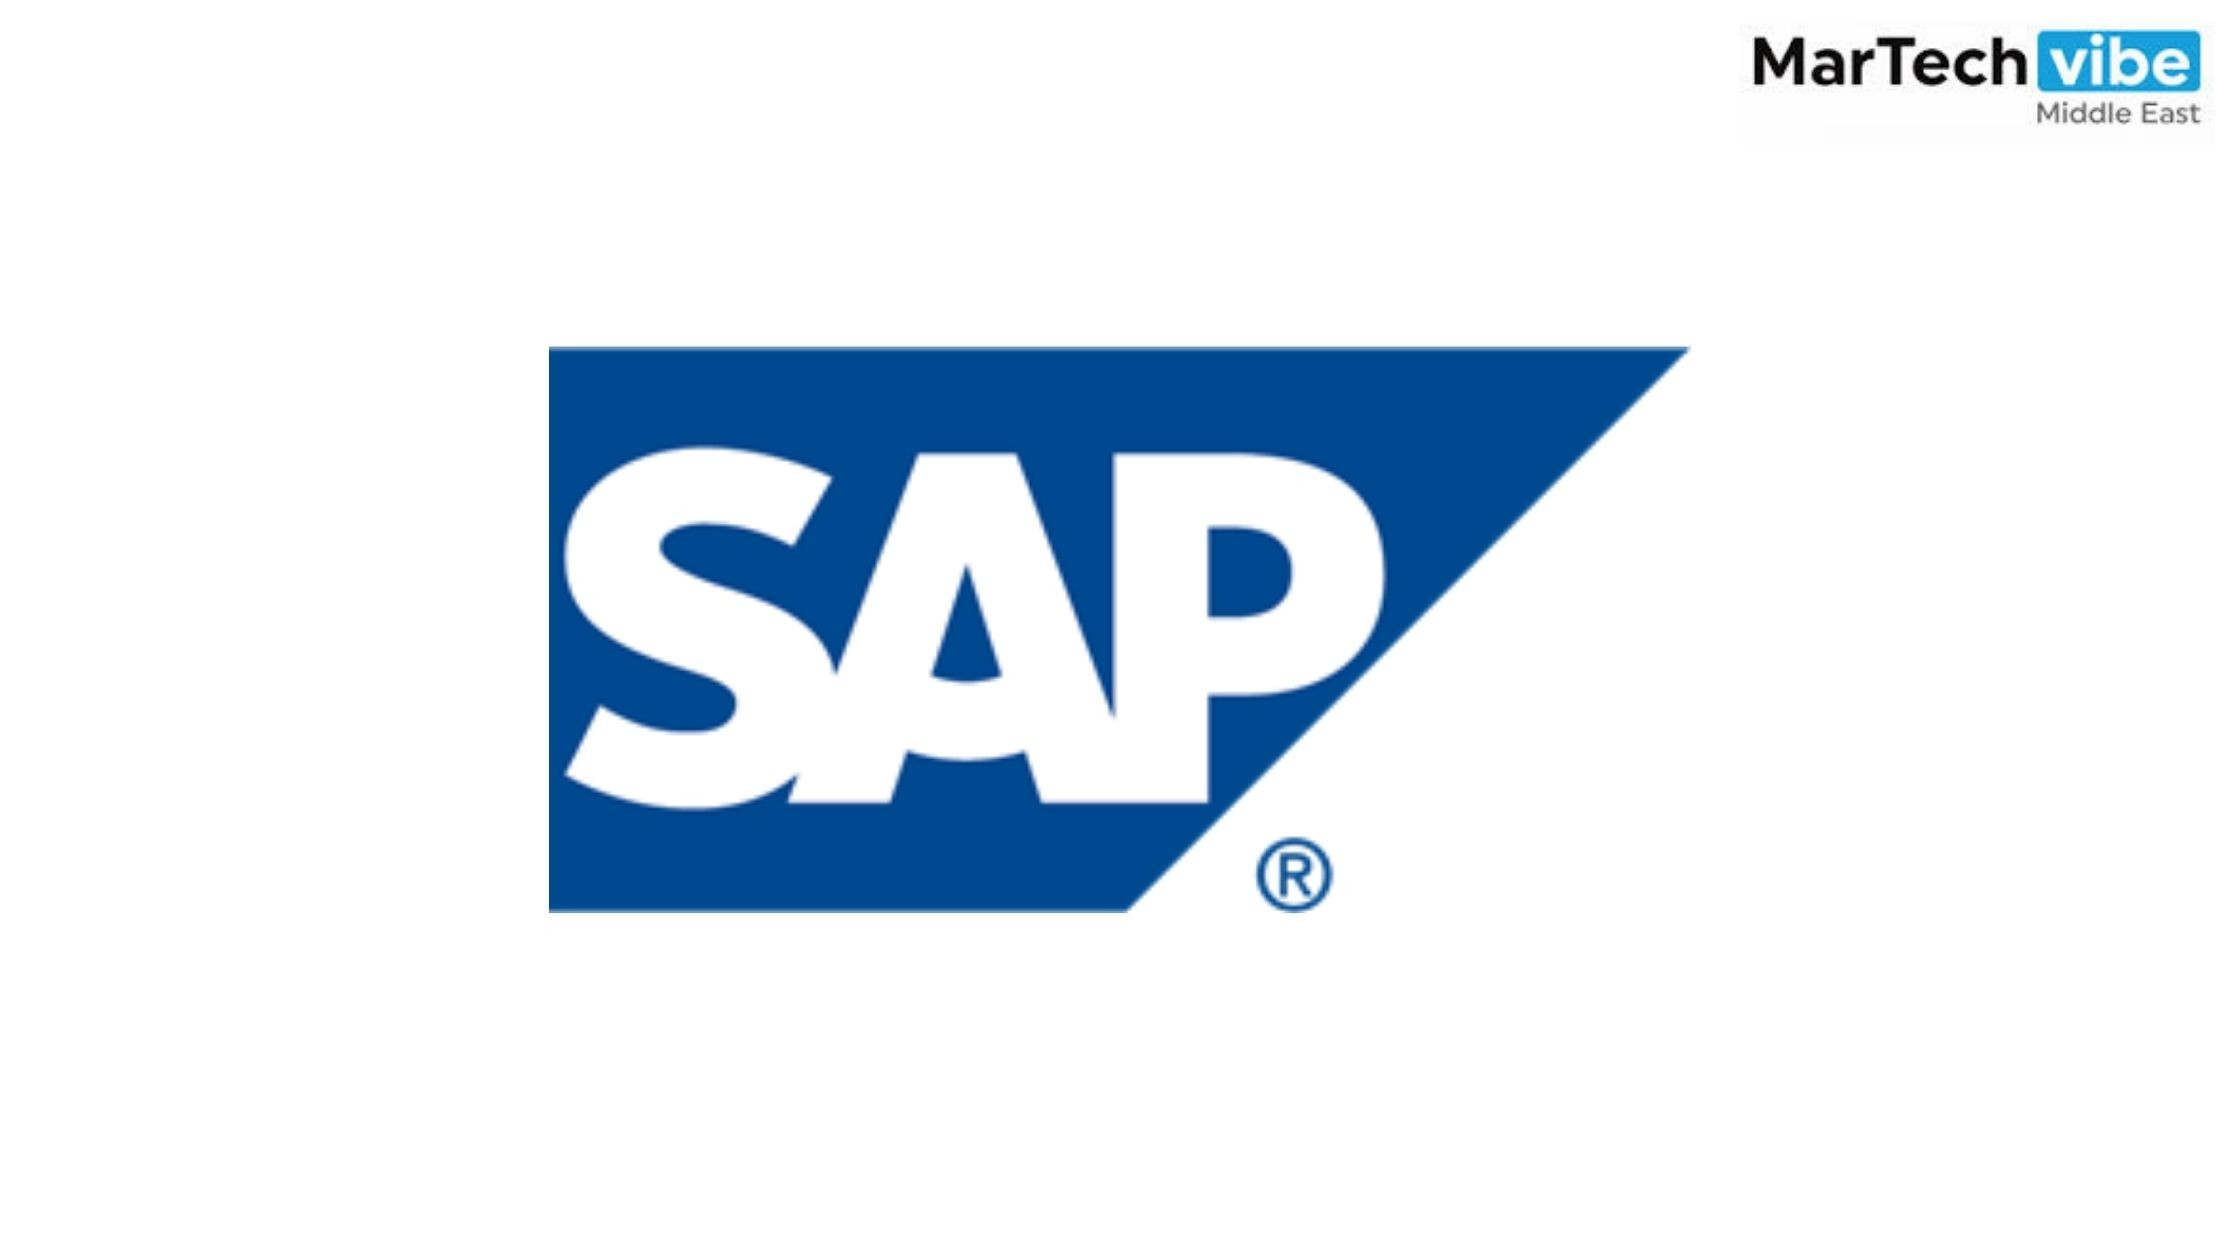 SAP Launches SAP Customer Data Platform to Enable Enterprises to Meet the Customer in the Moment